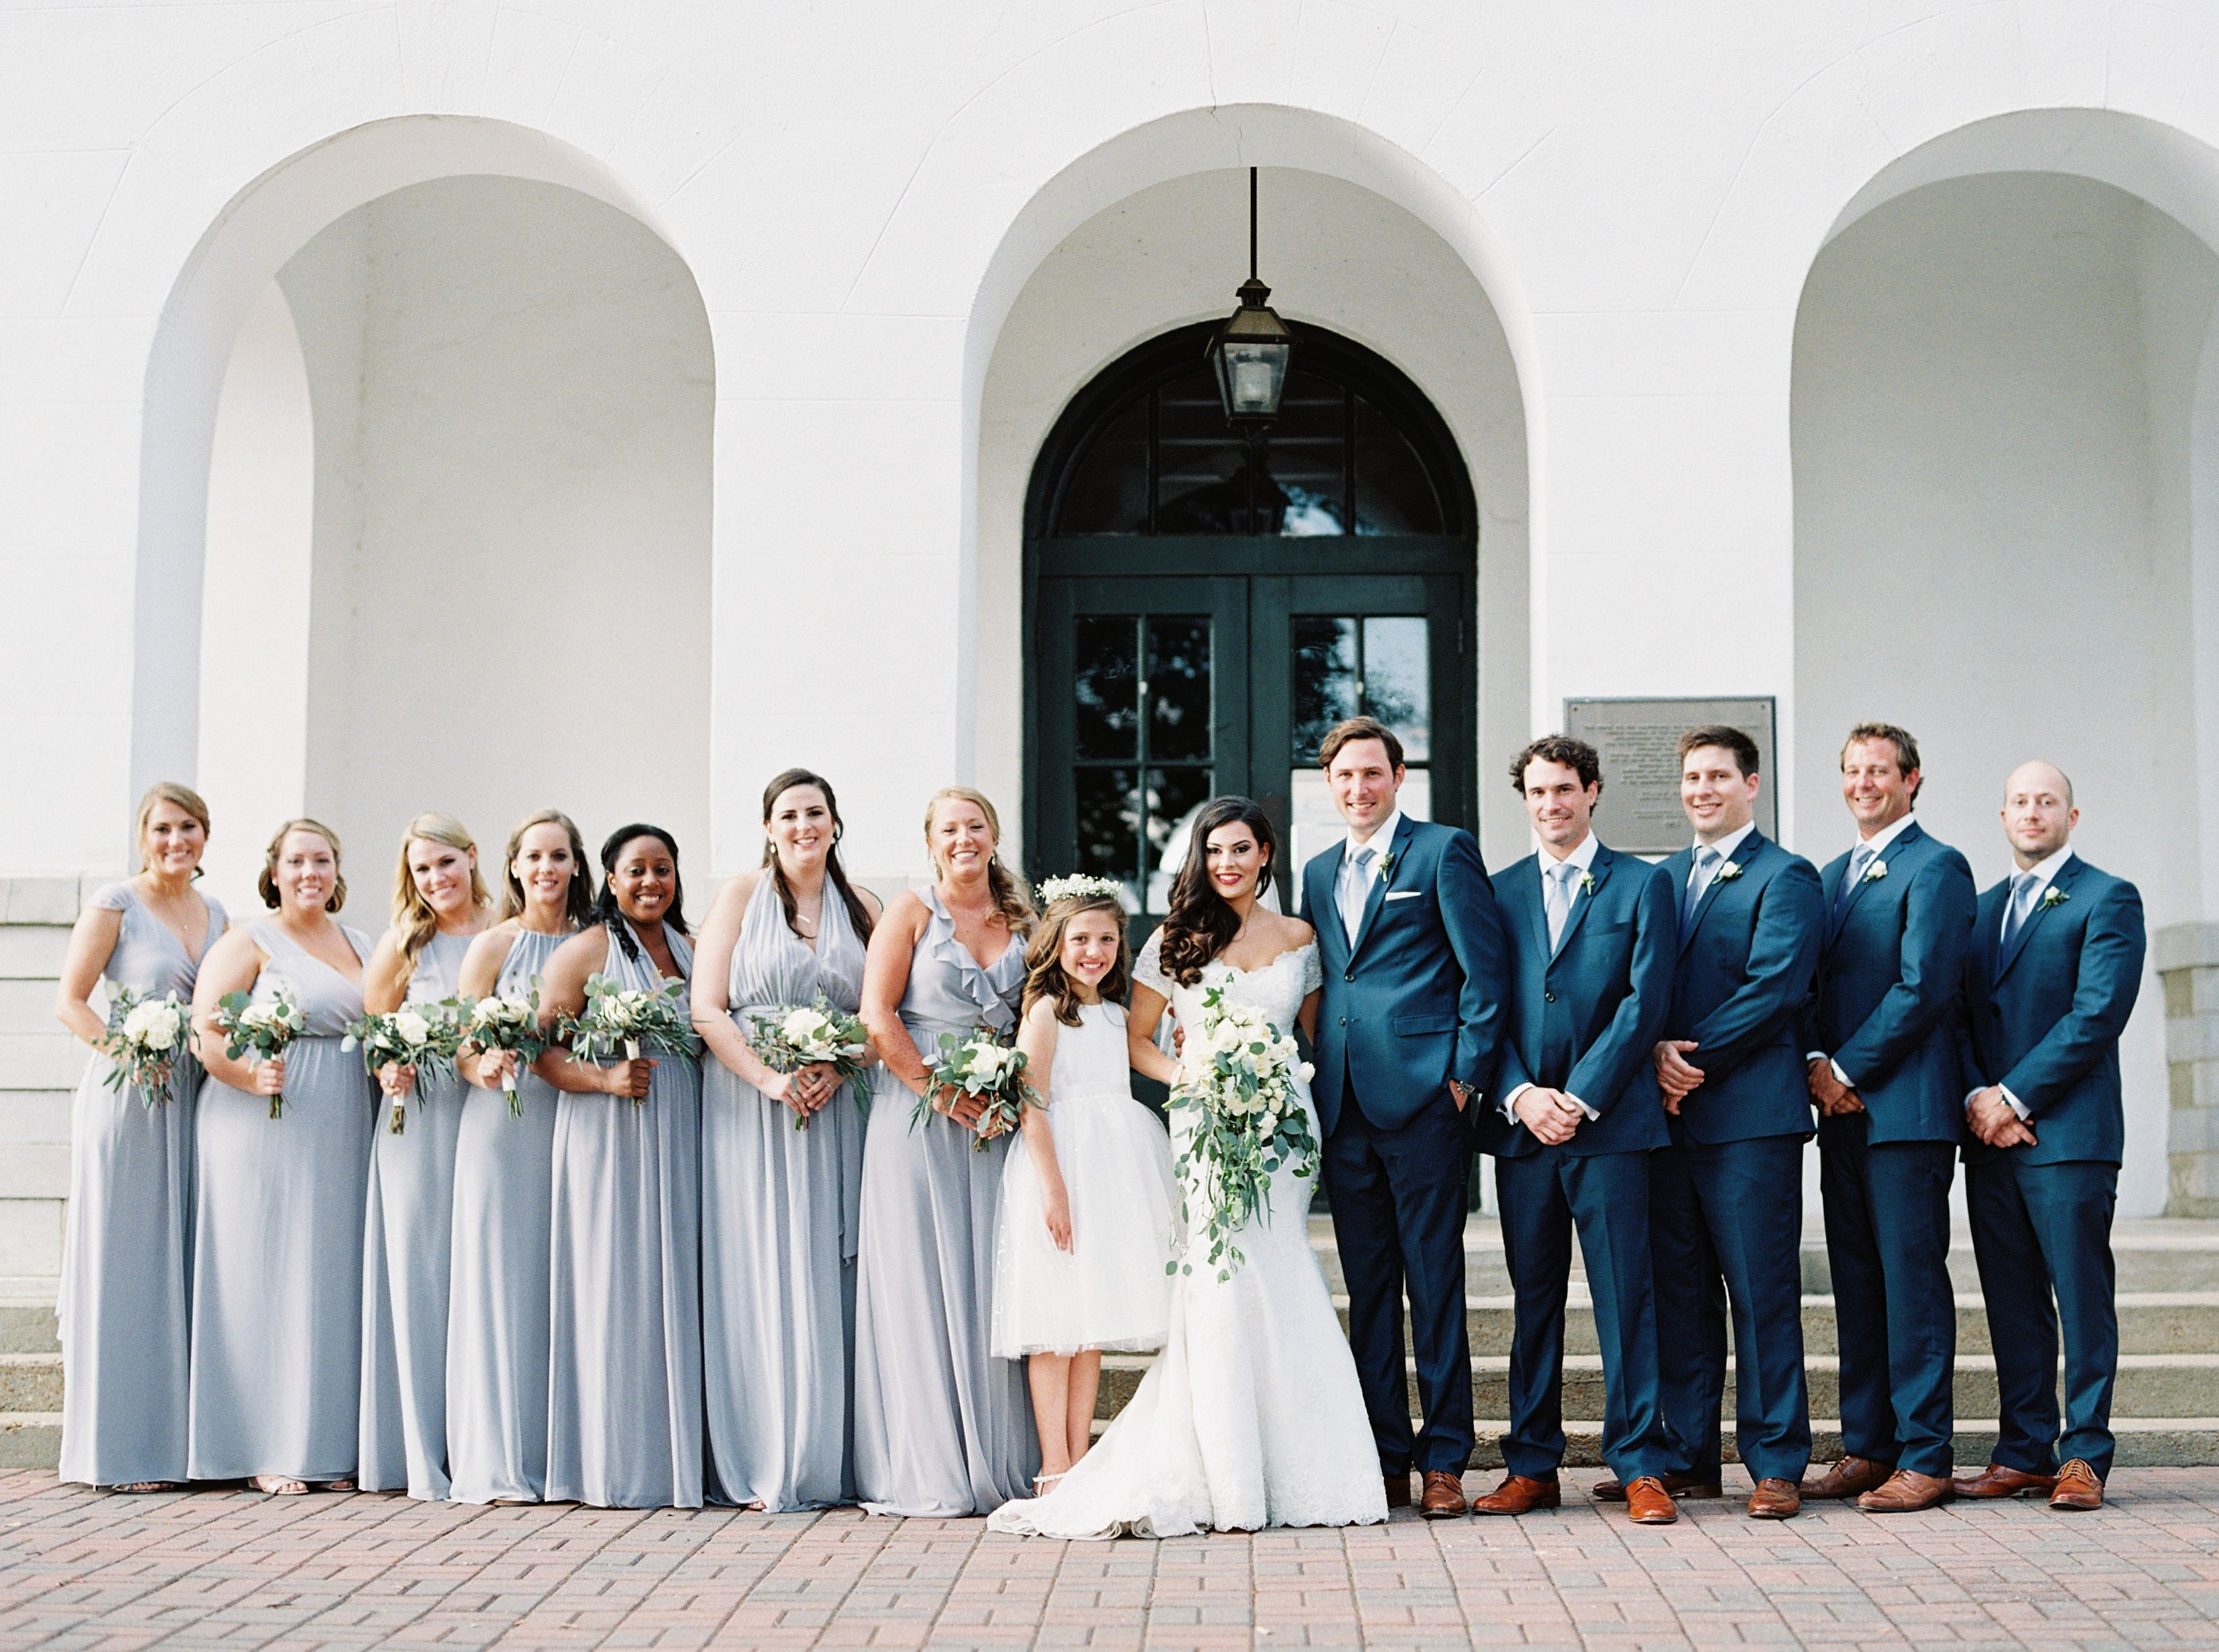 Bridal Party Oxford Ms Downtown Square Wedding Photographers Bridal Party Wedding Dresses